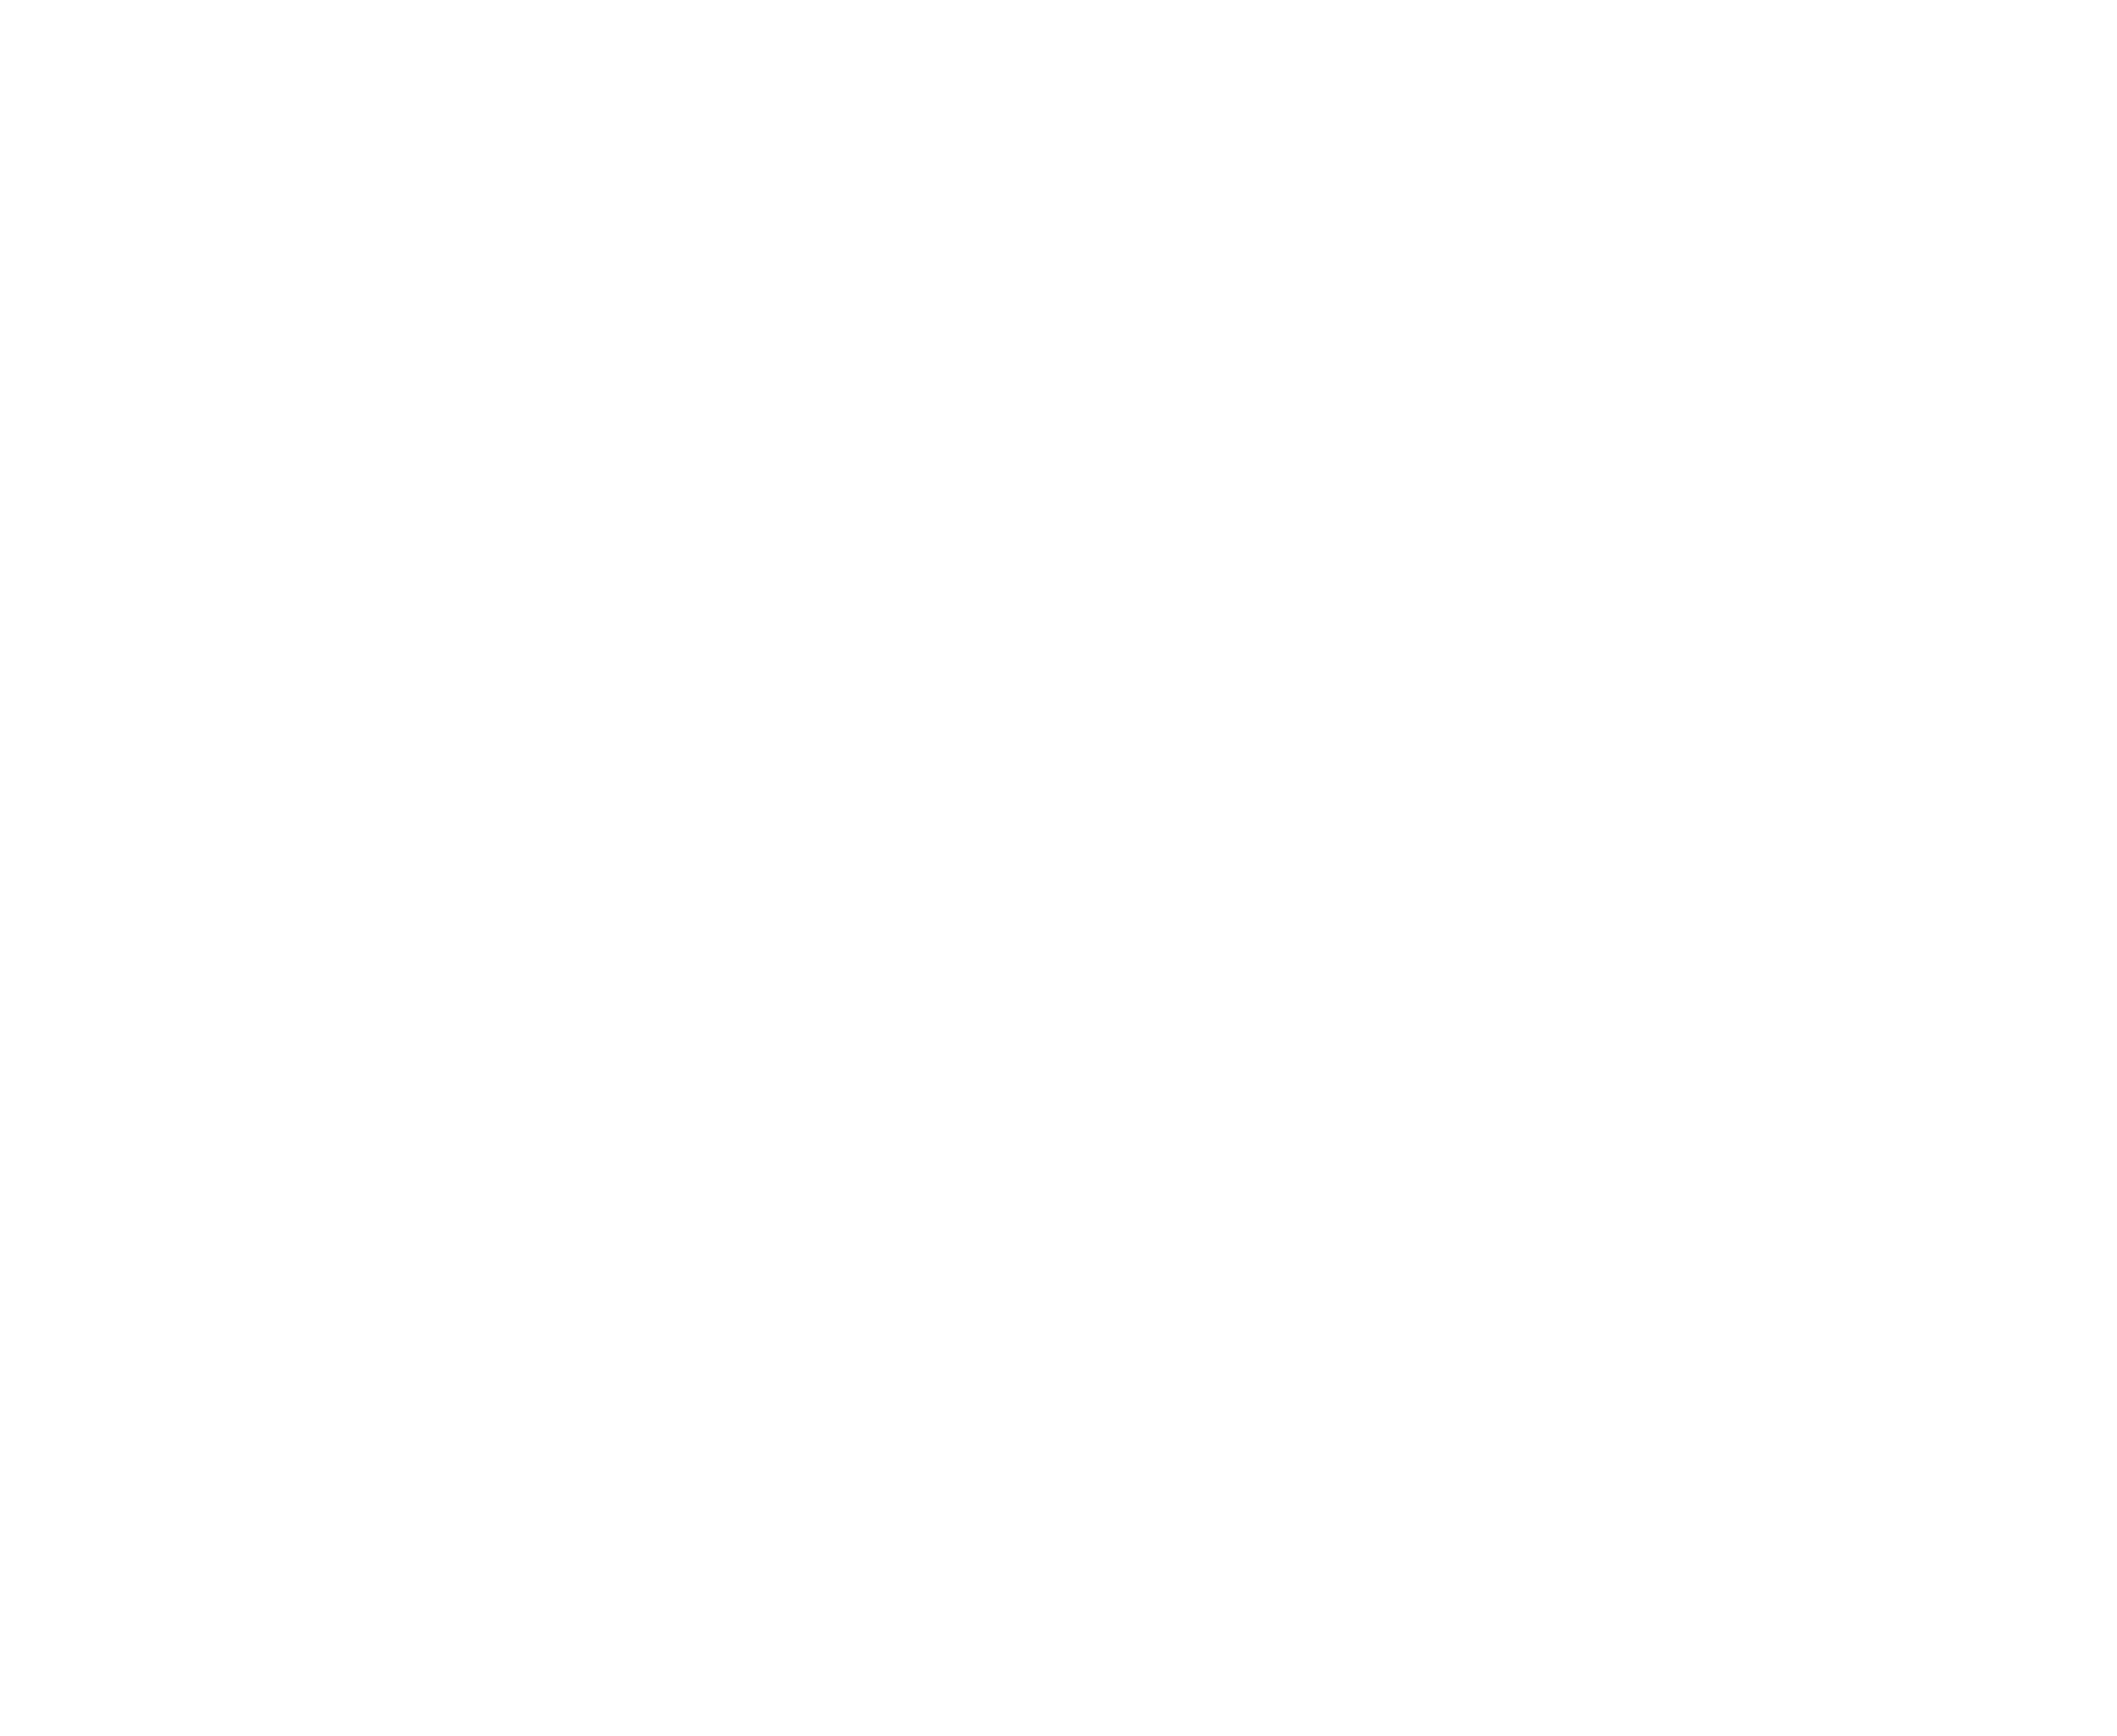 wisely insights